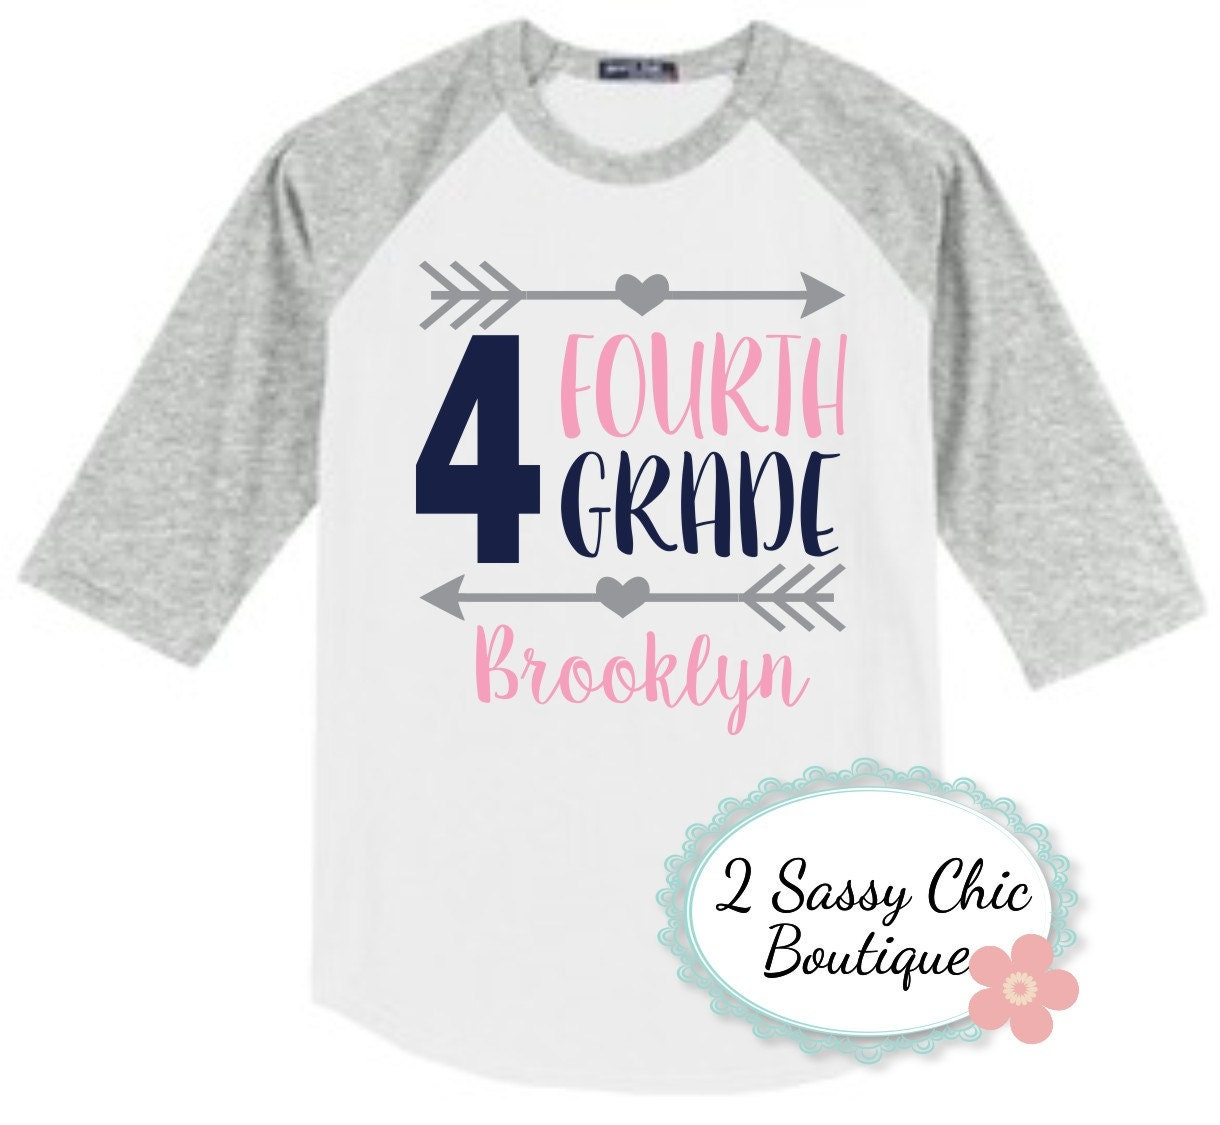 Fourth Grade Back To School Raglan Shirt Kindergarten School